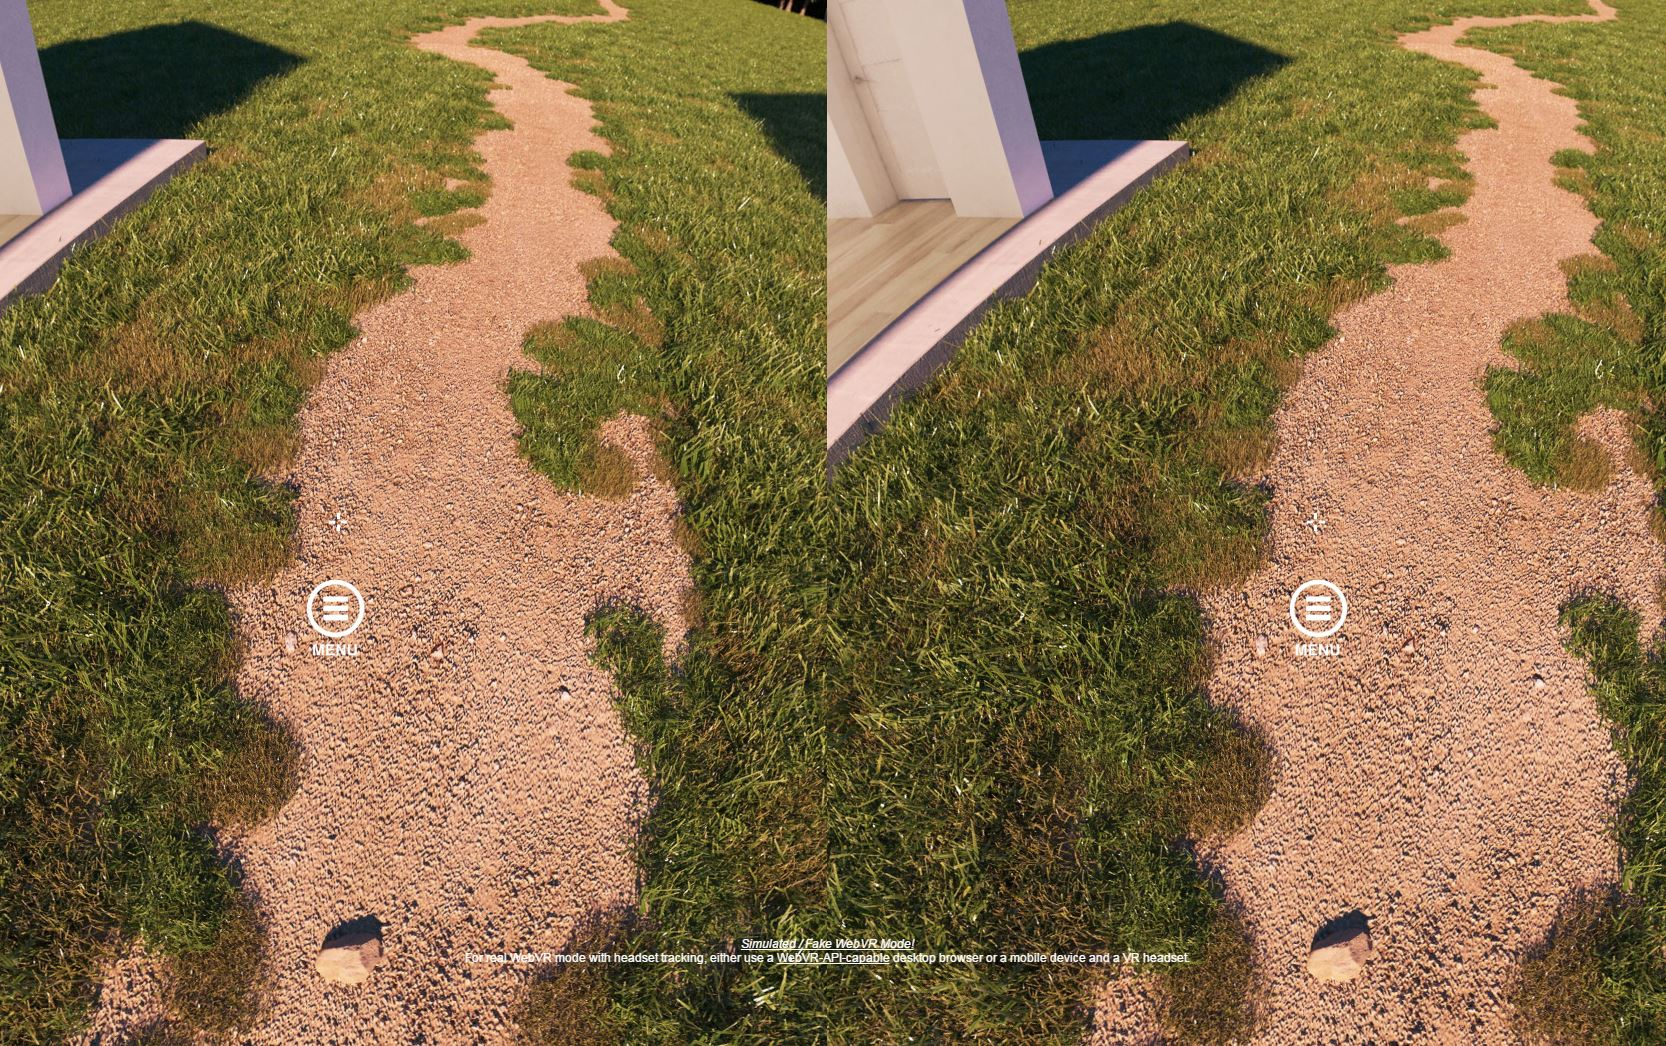 3D View: Place cross on top of icon and focus for a few seconds